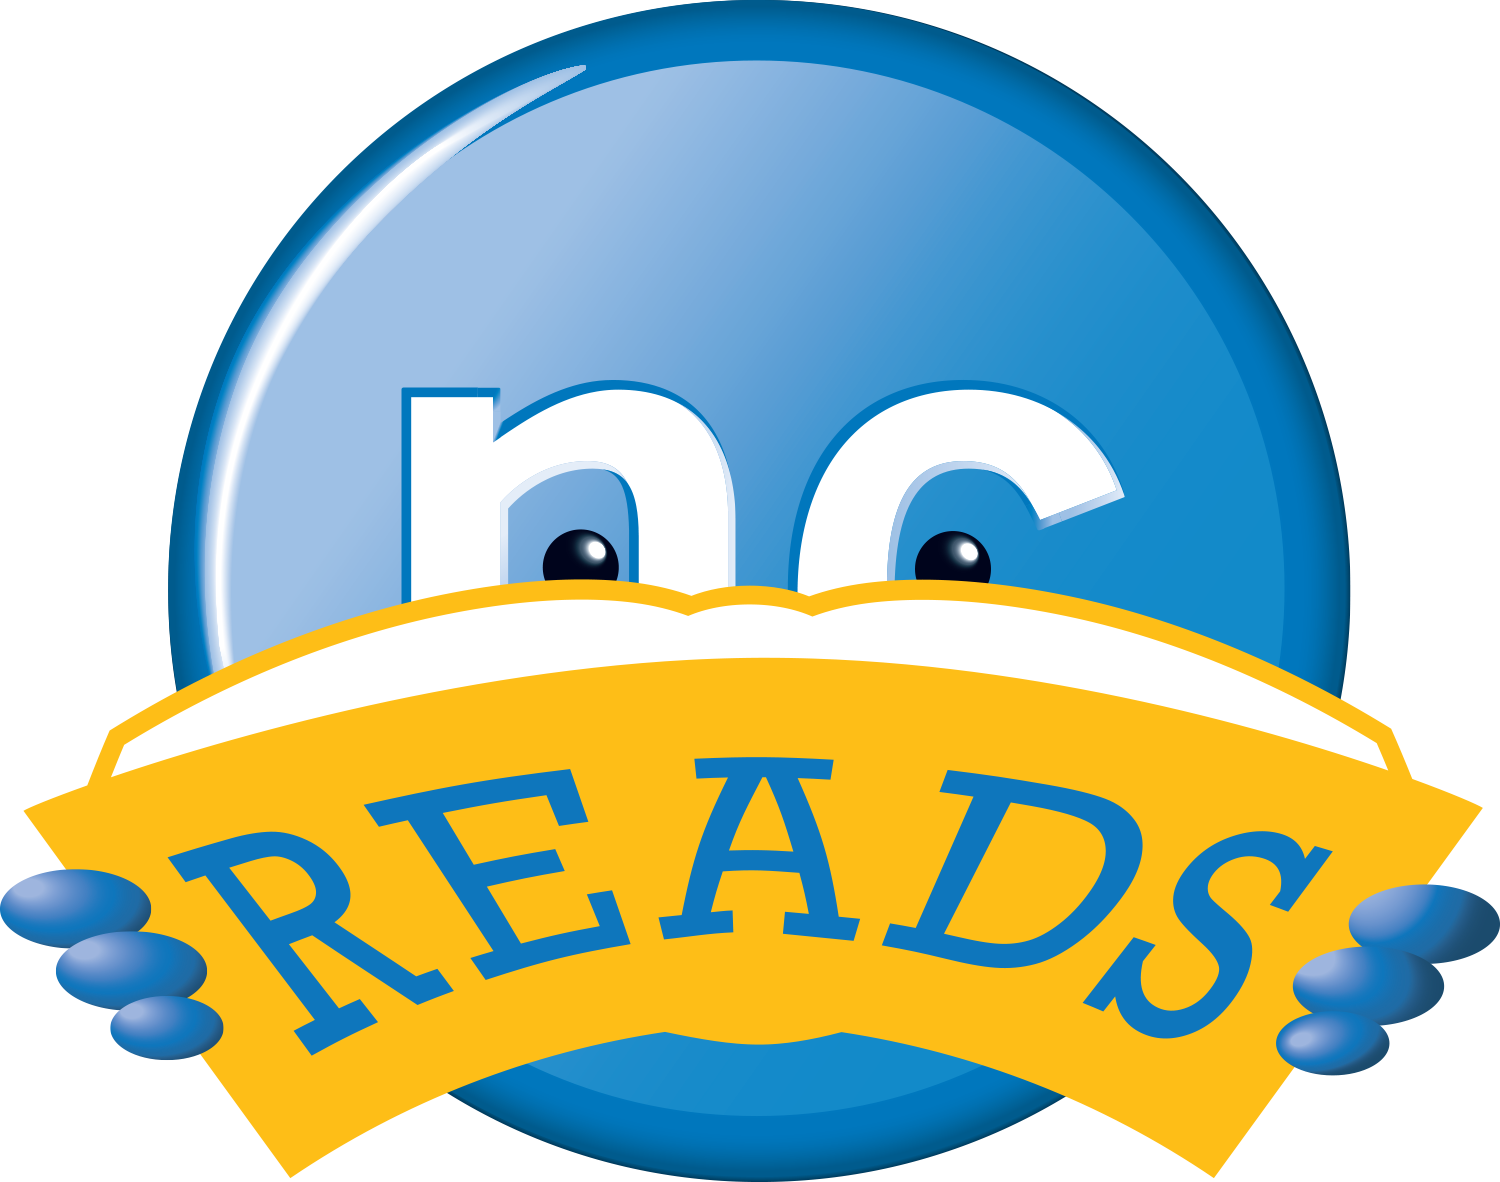 ncreads logo, white nc in a blue circle holding open book